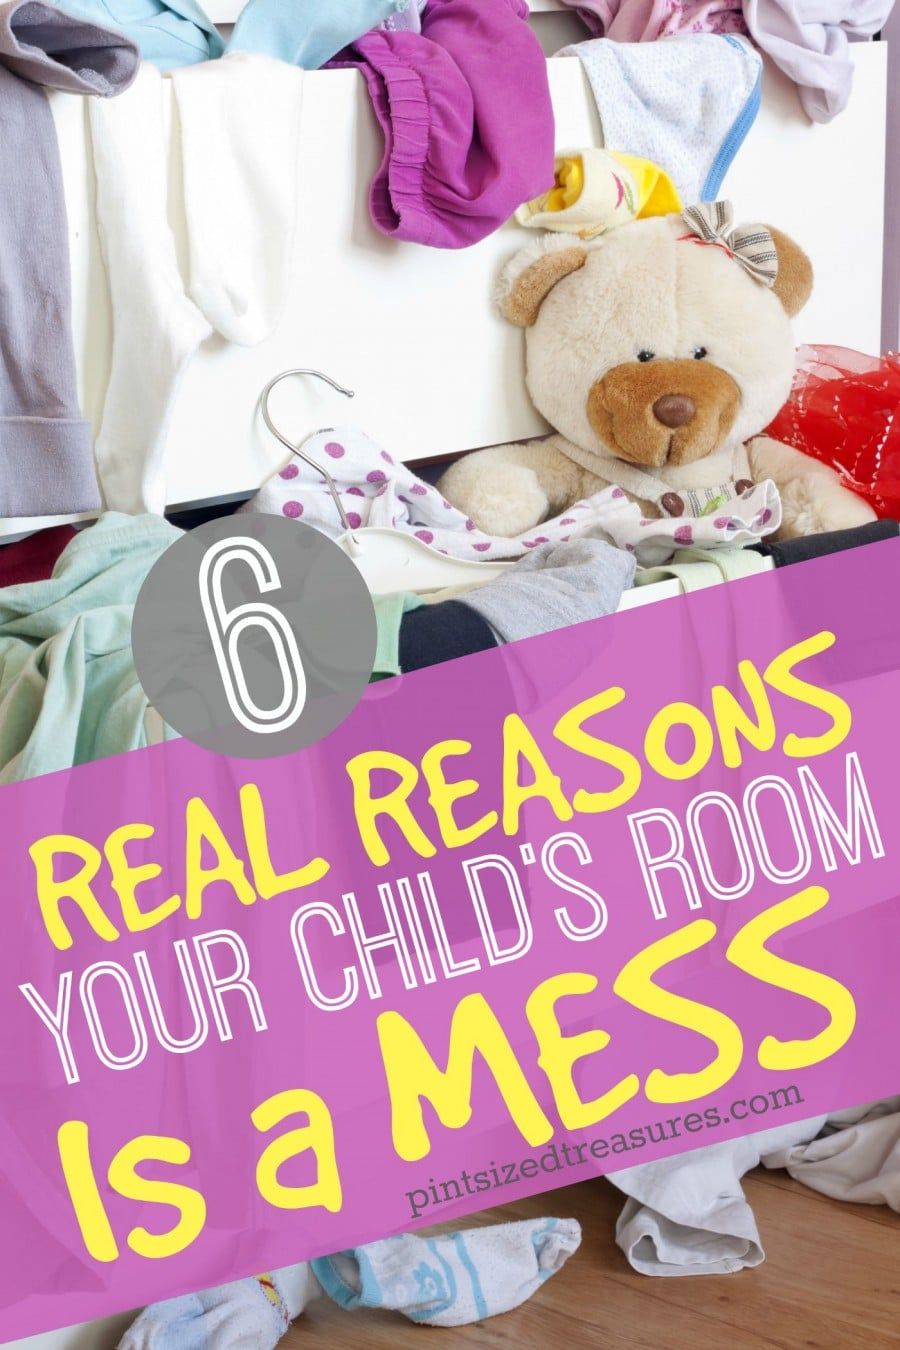 kids room is a mess